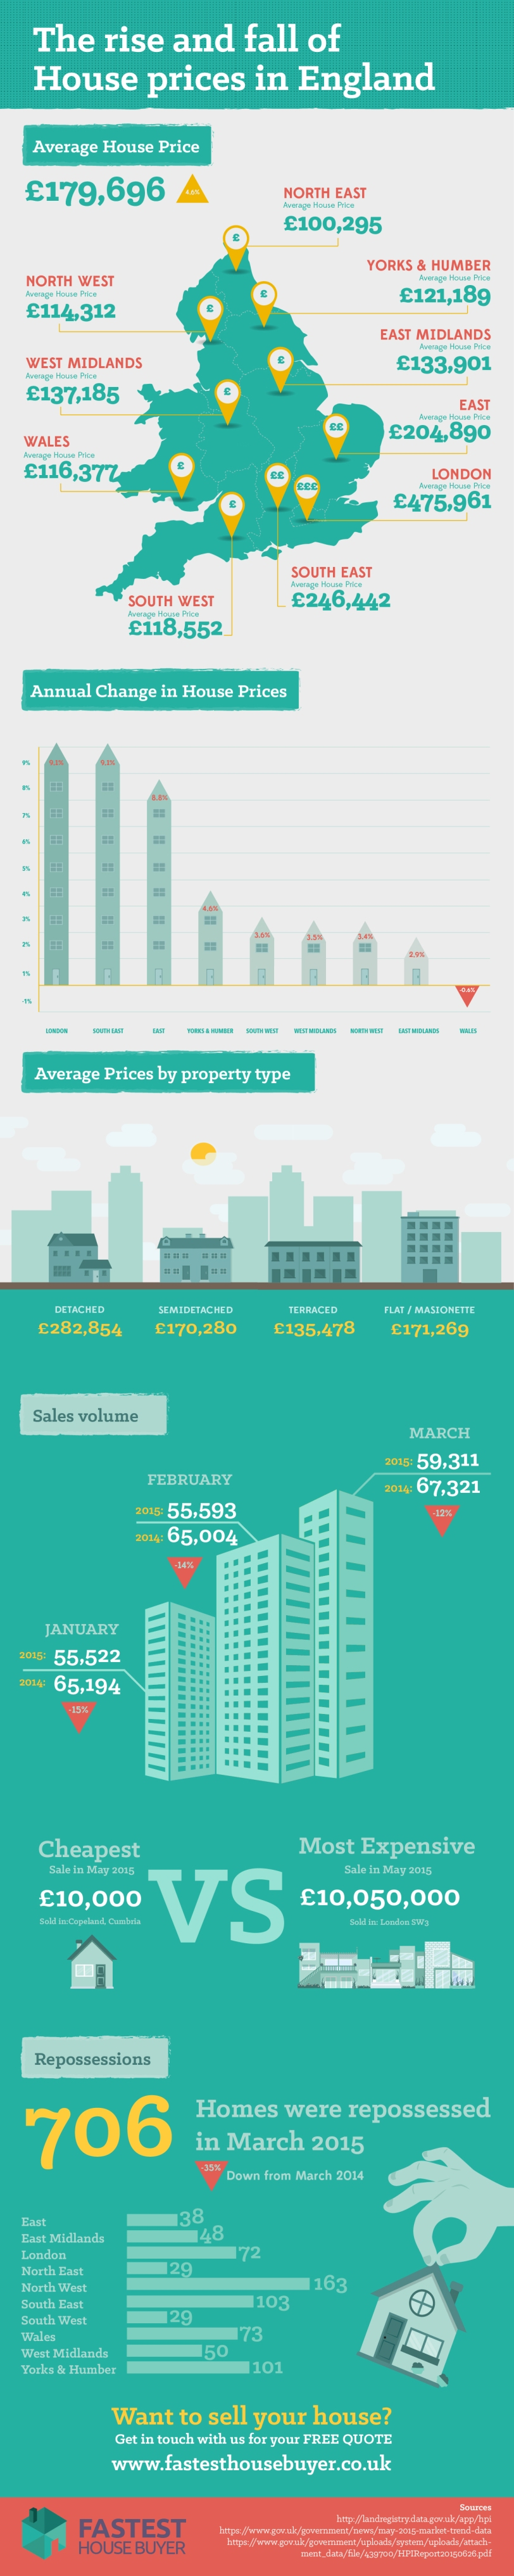 The Rise and Fall of House Prices in England by Fastesthousebuyer.co.uk